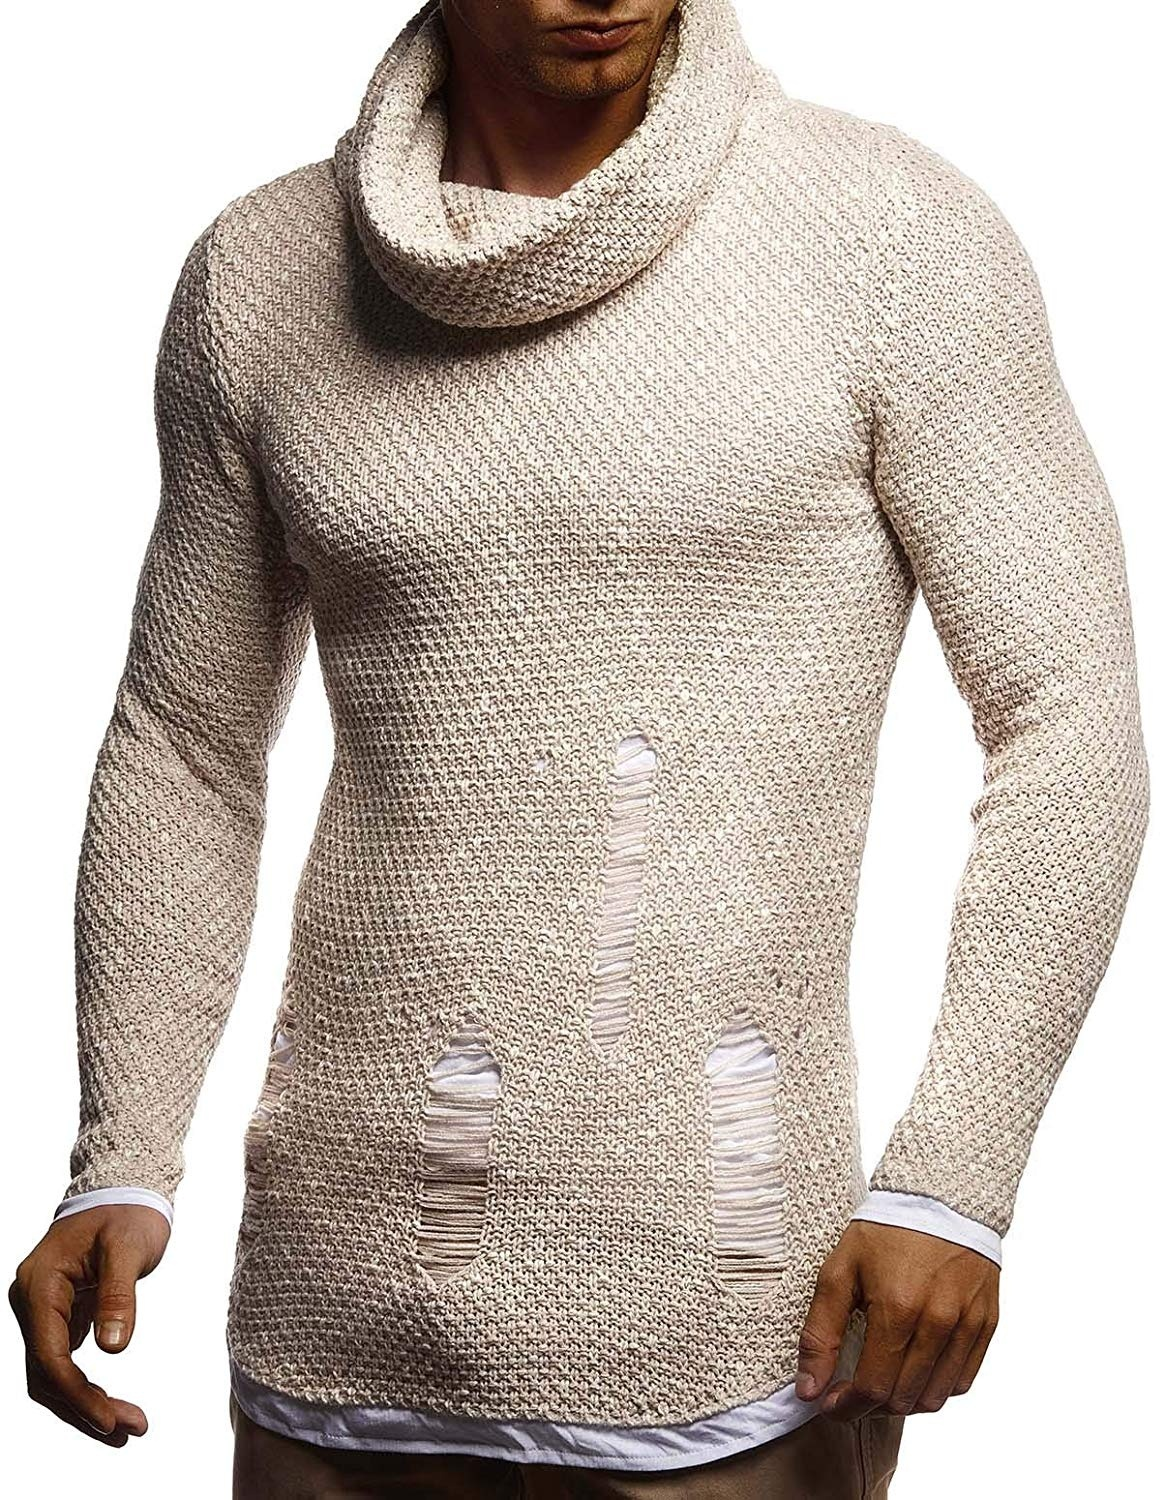 ZOGAA Men's Sweater Knitted Shawl Turtleneck Sweater Pullover Winter Hip Hop Streetwear Long Sleeve High Quality Man's Sweater